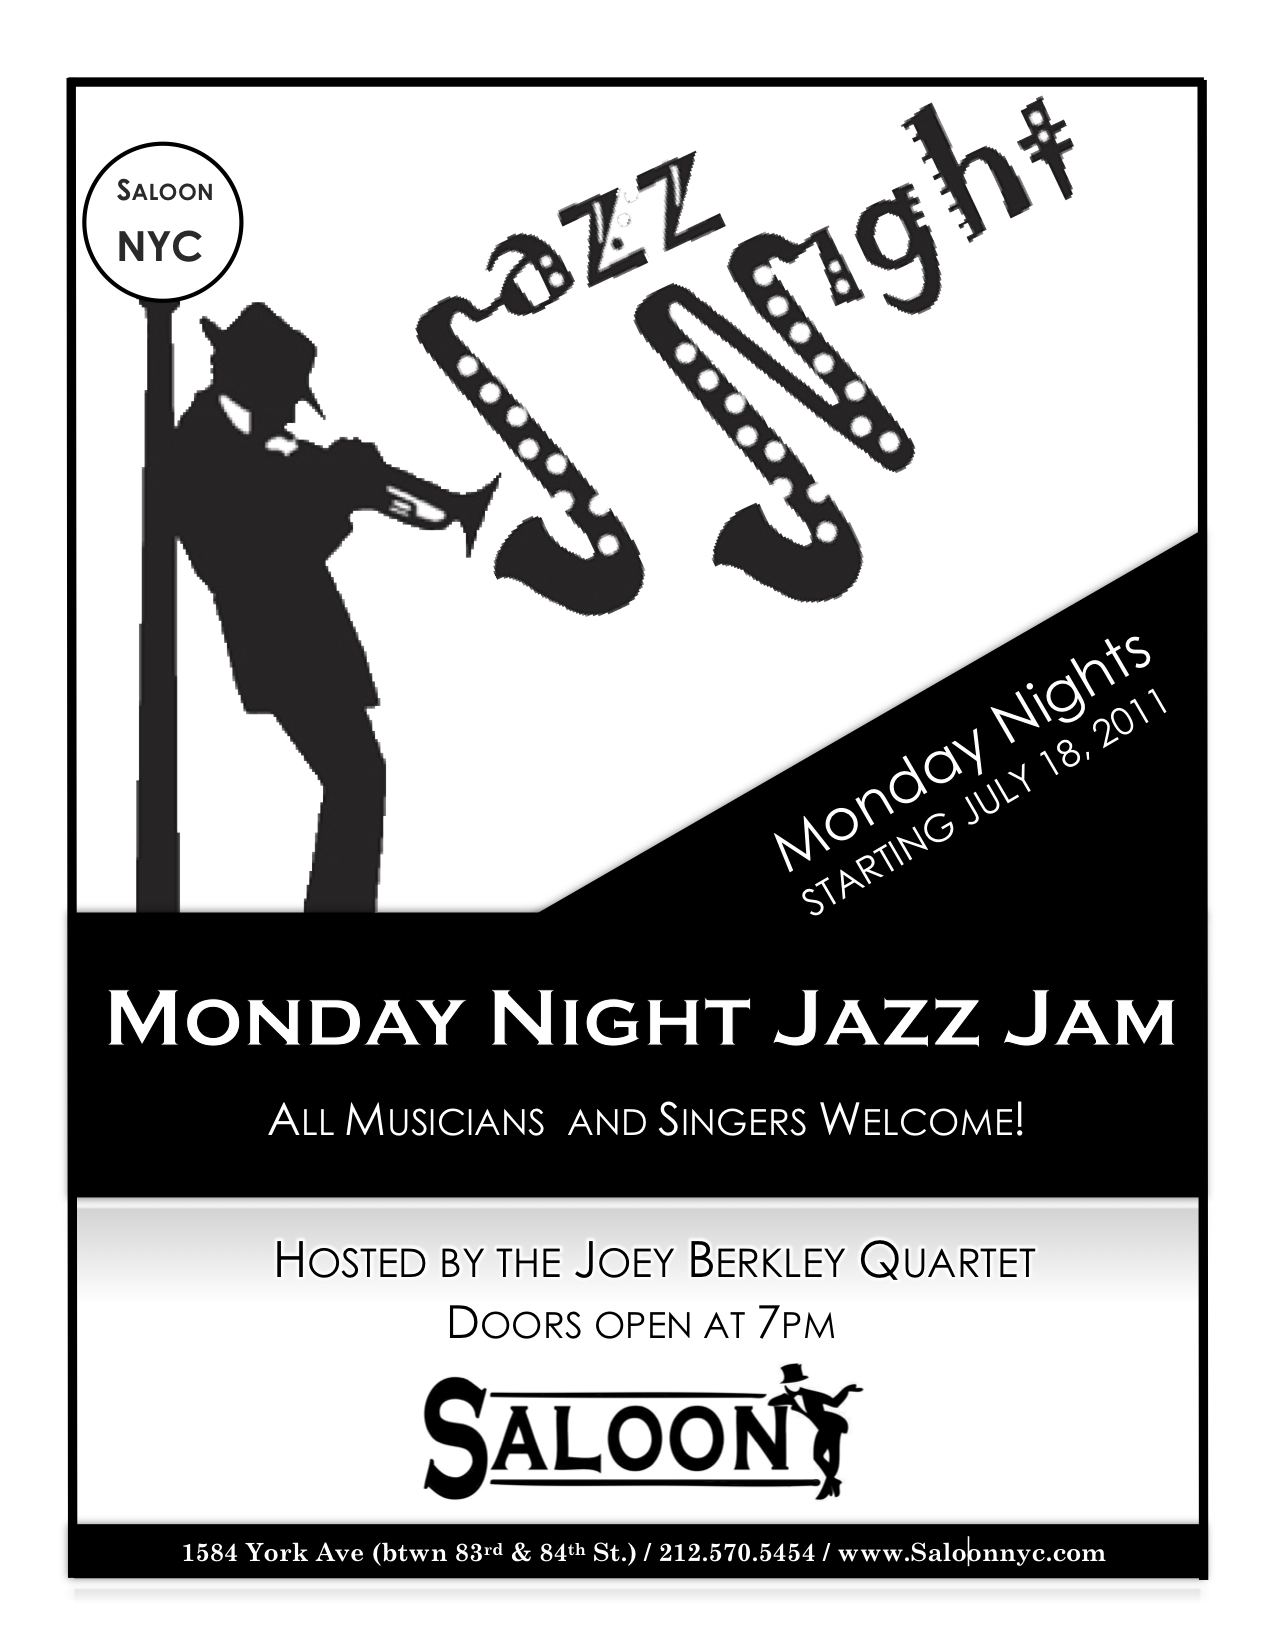 Joey Berkley Quartet Hosts Monday Night Jam @ Saloon, NYC